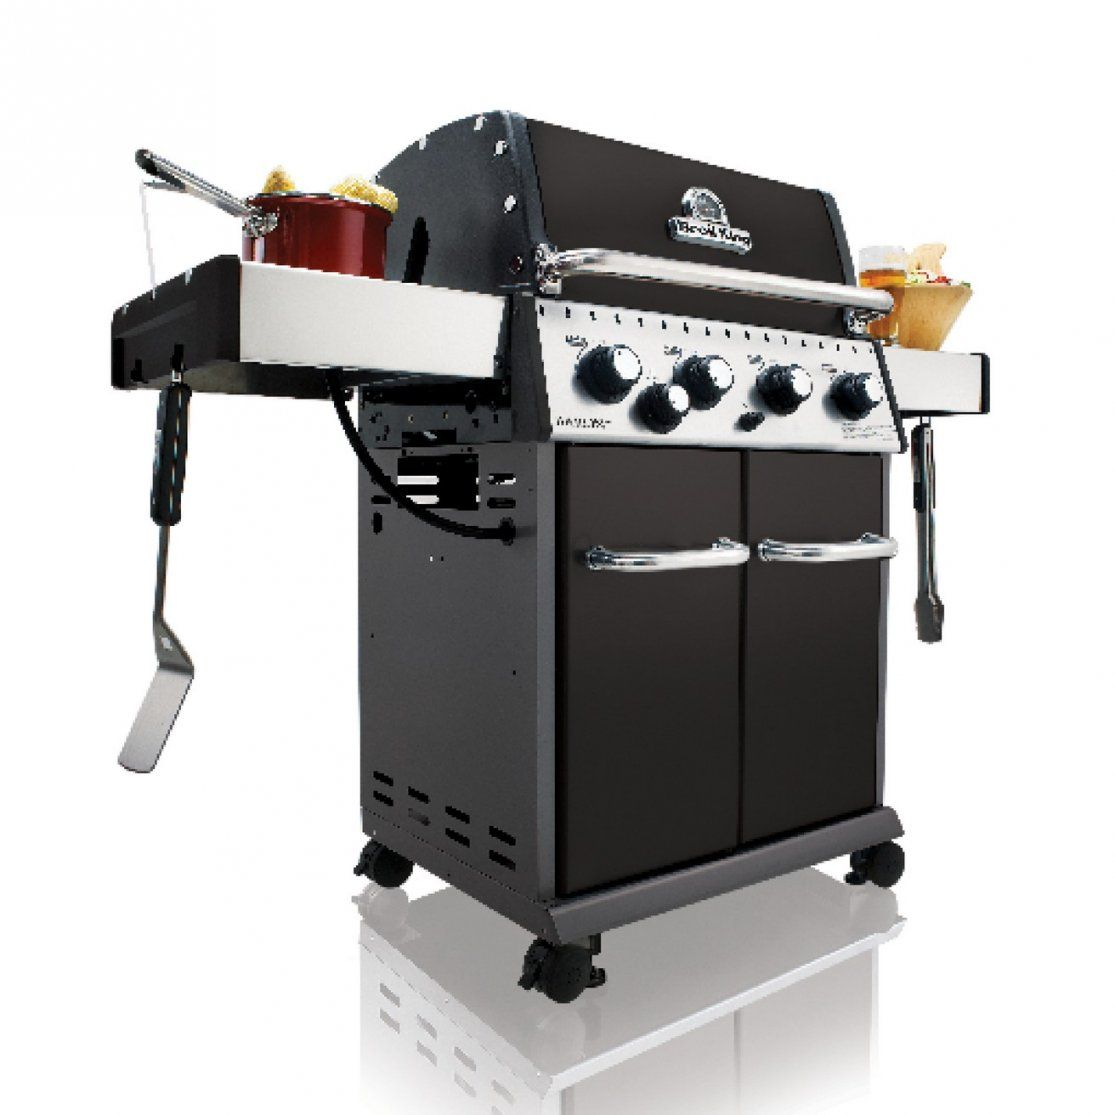 Broil King Baron 440  Gas Barbecue  Barbecueland von Broil King Baron 440 Test Photo